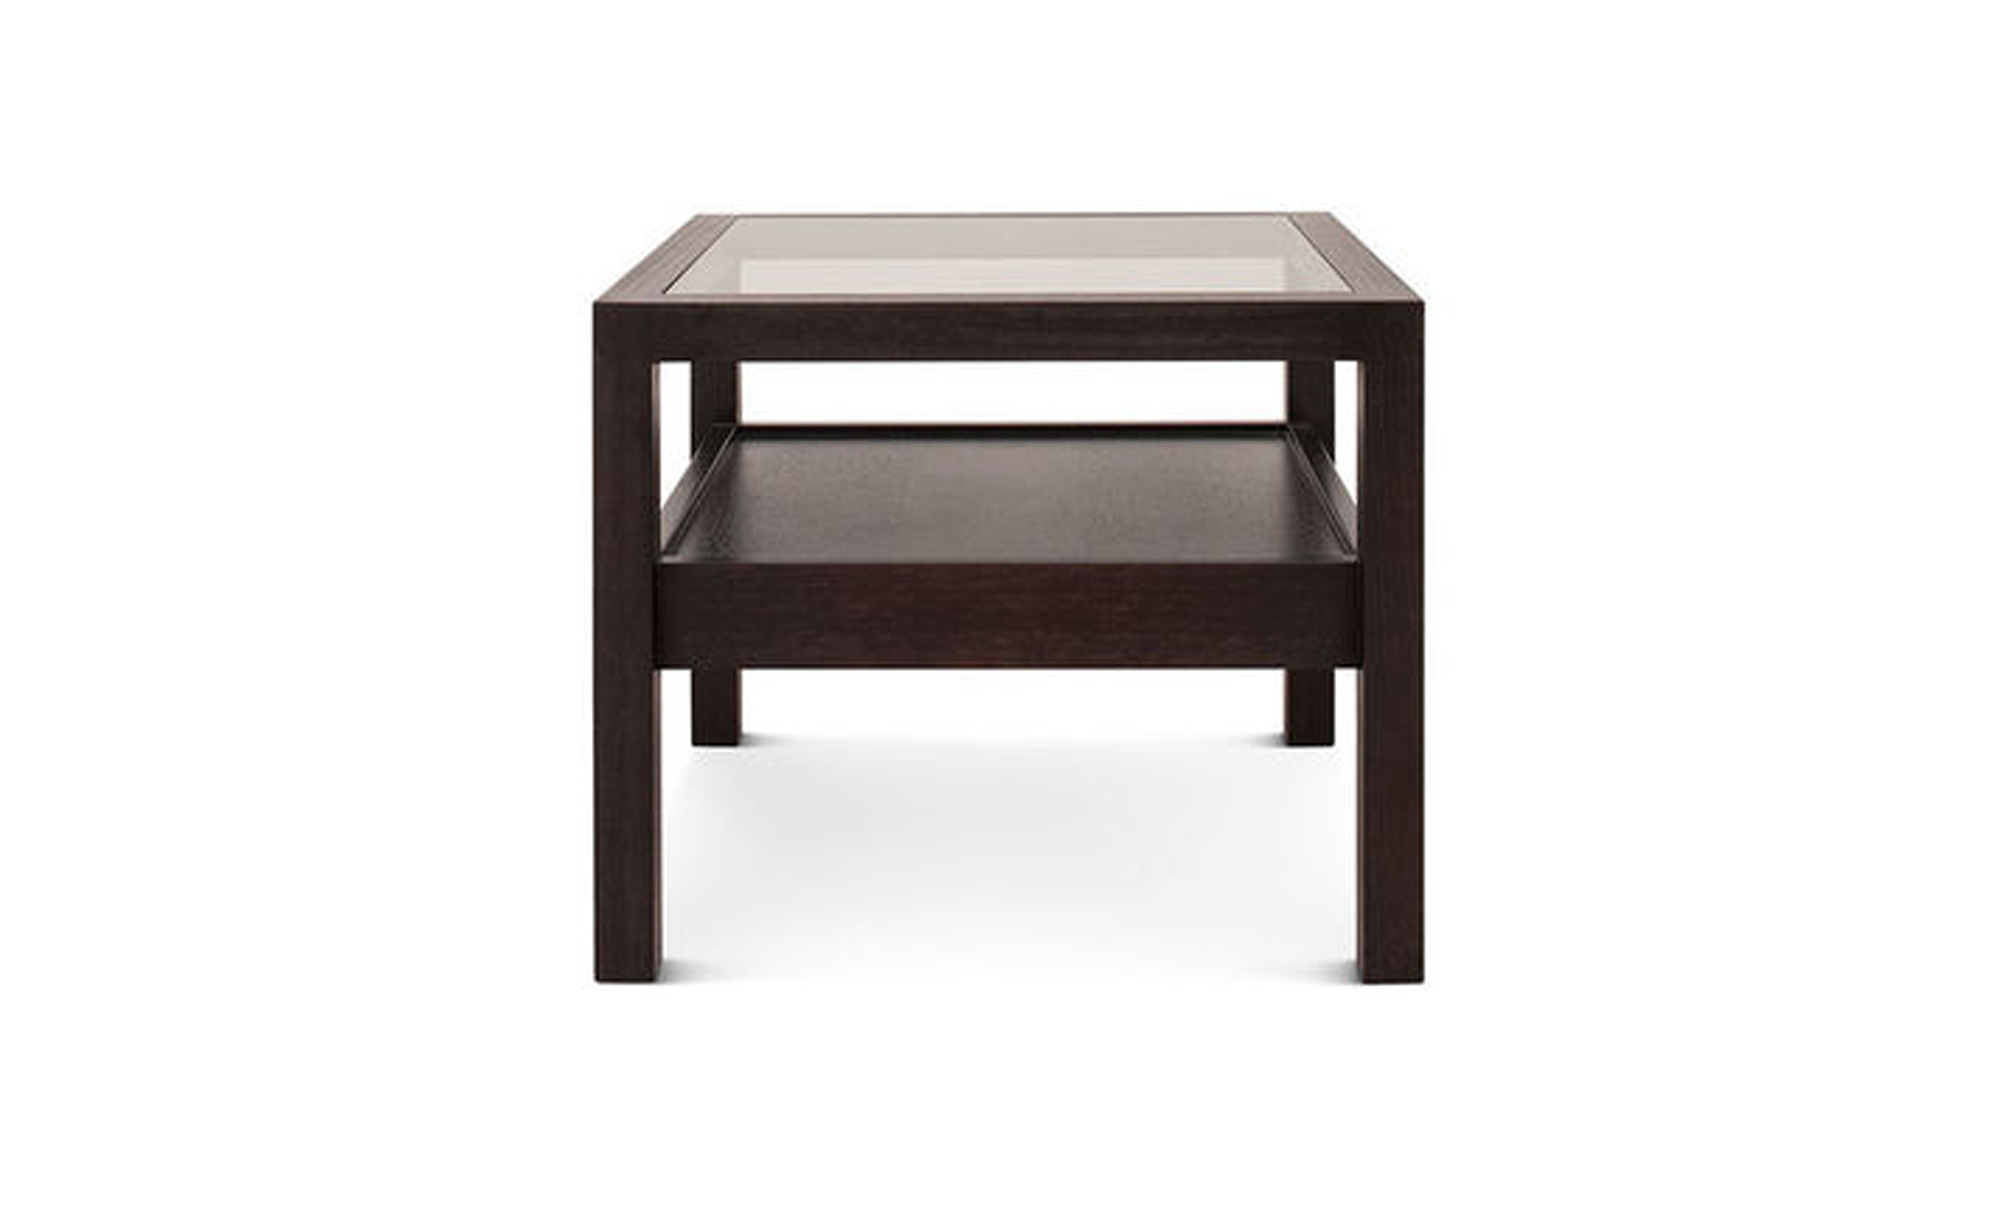 Davis Coffee Tables Fanuli Furniture